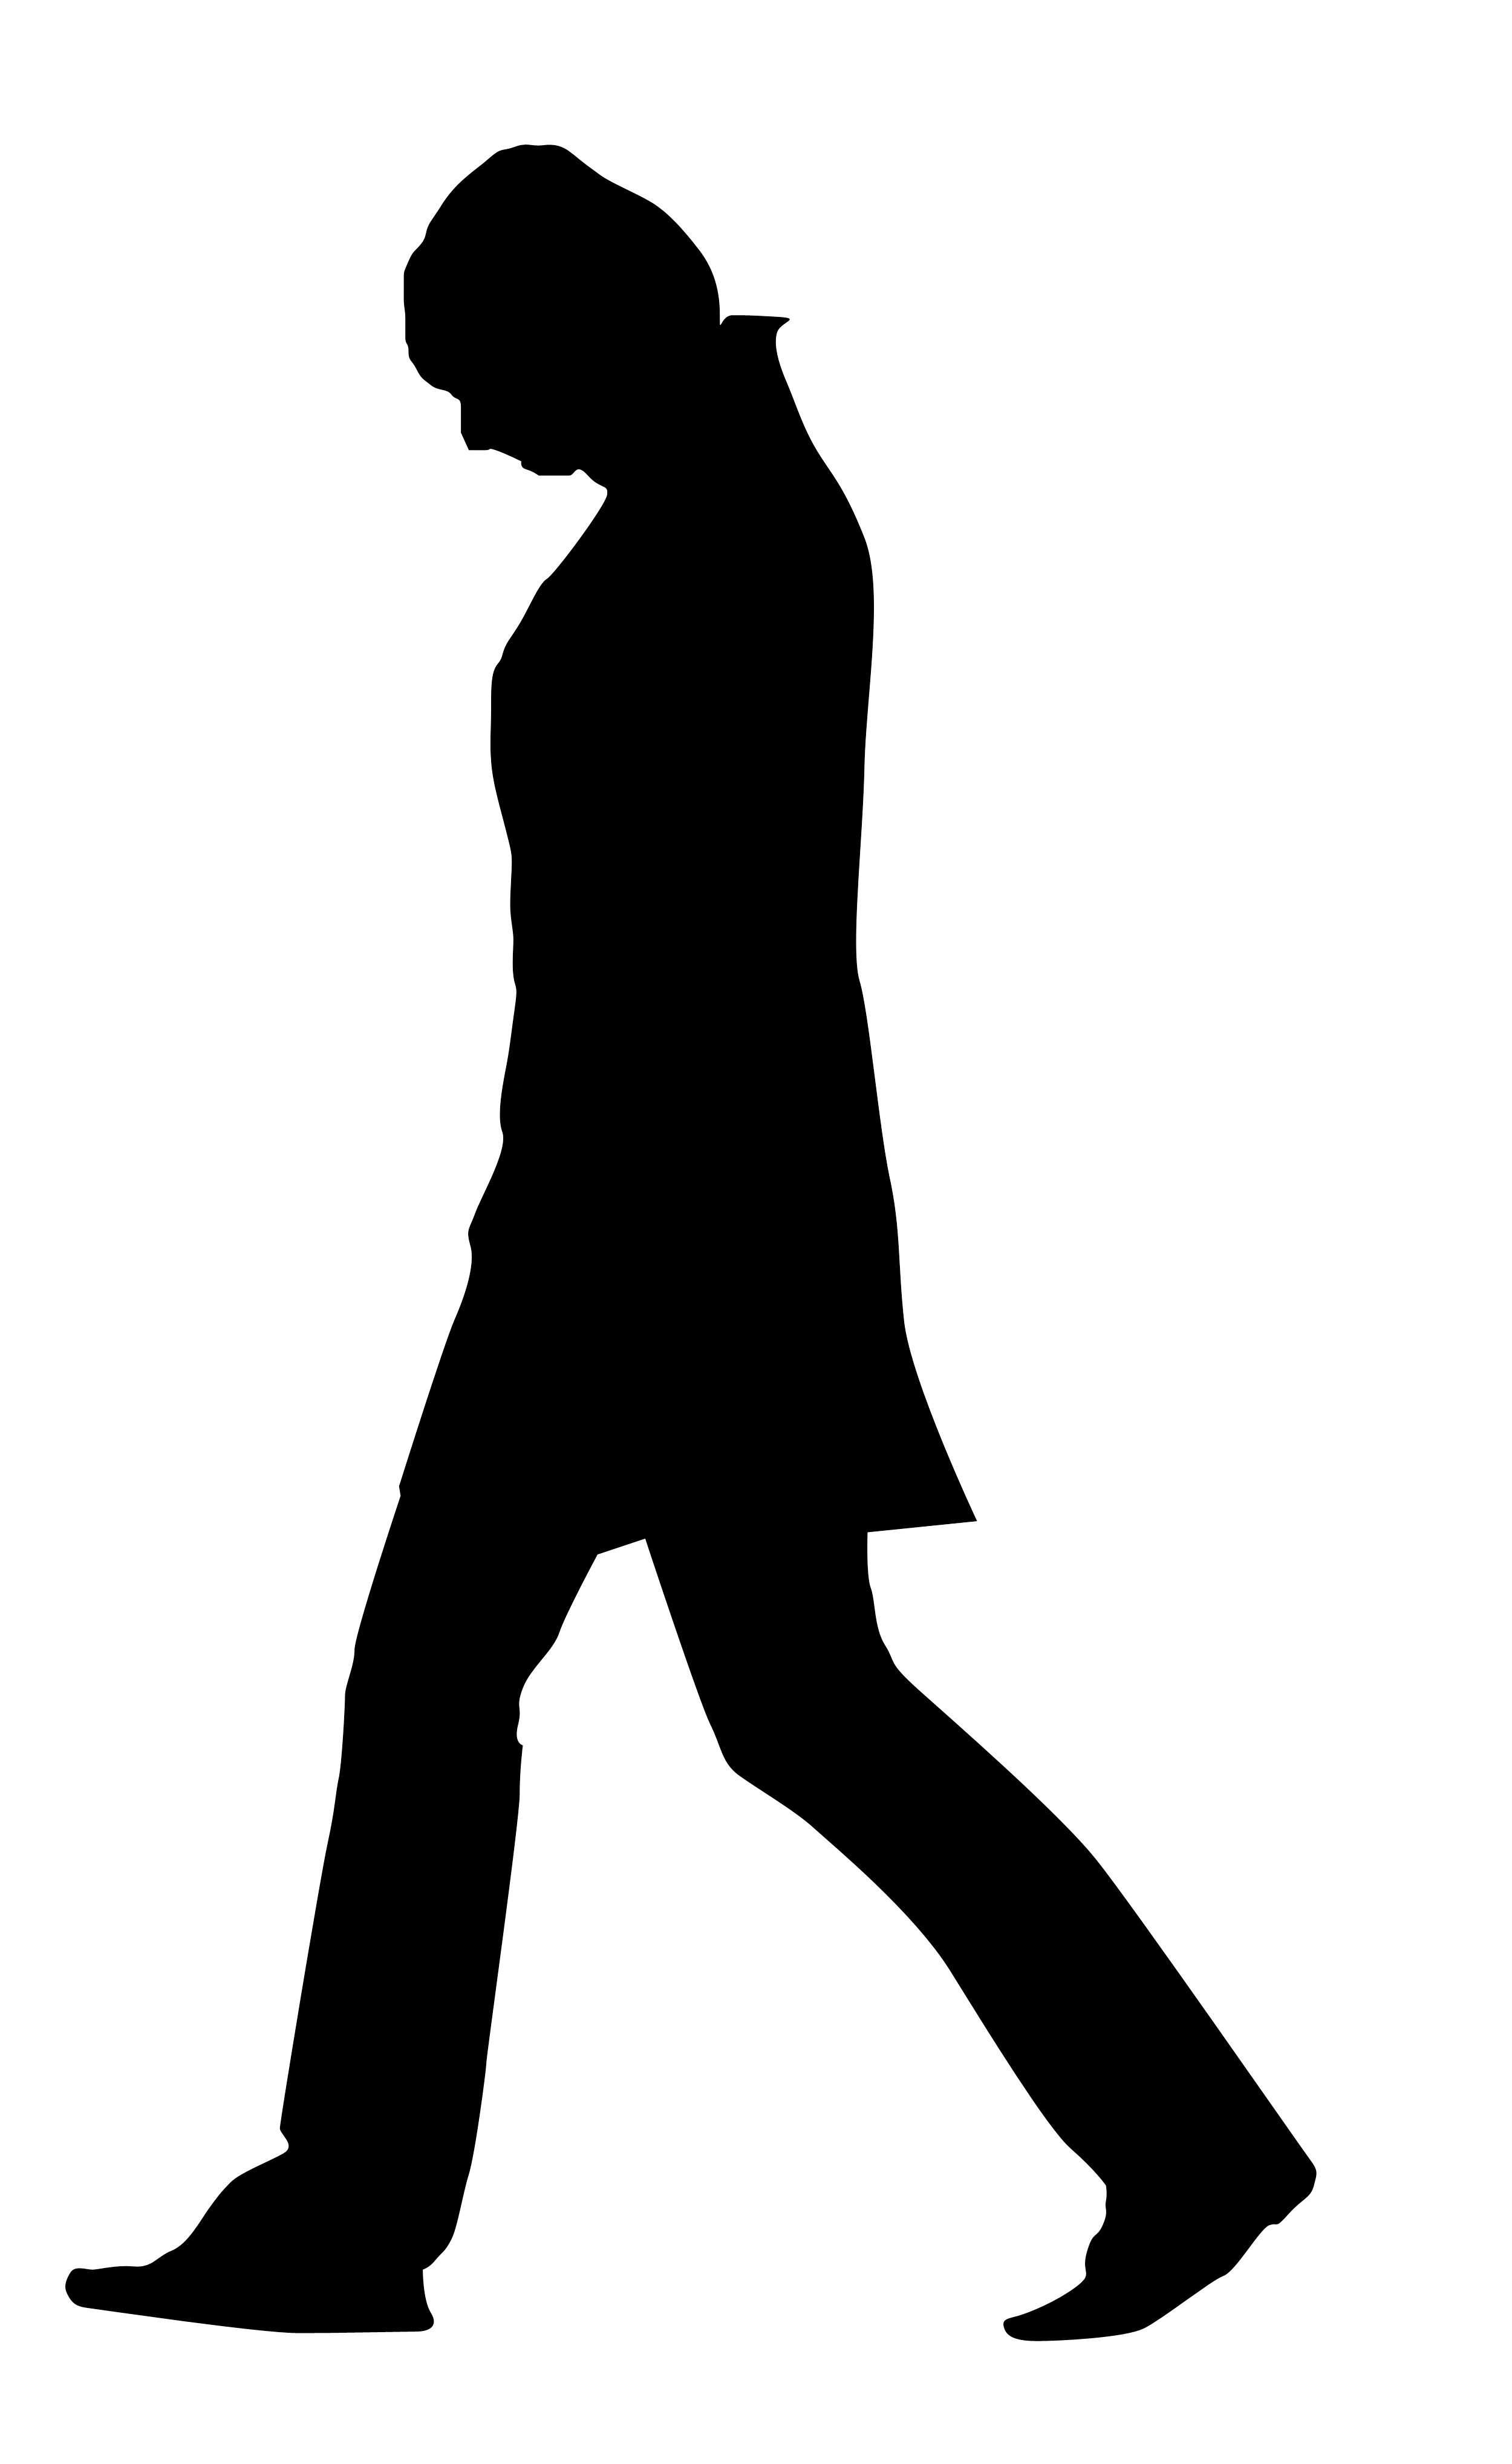 Silhouette Of A Person Walking